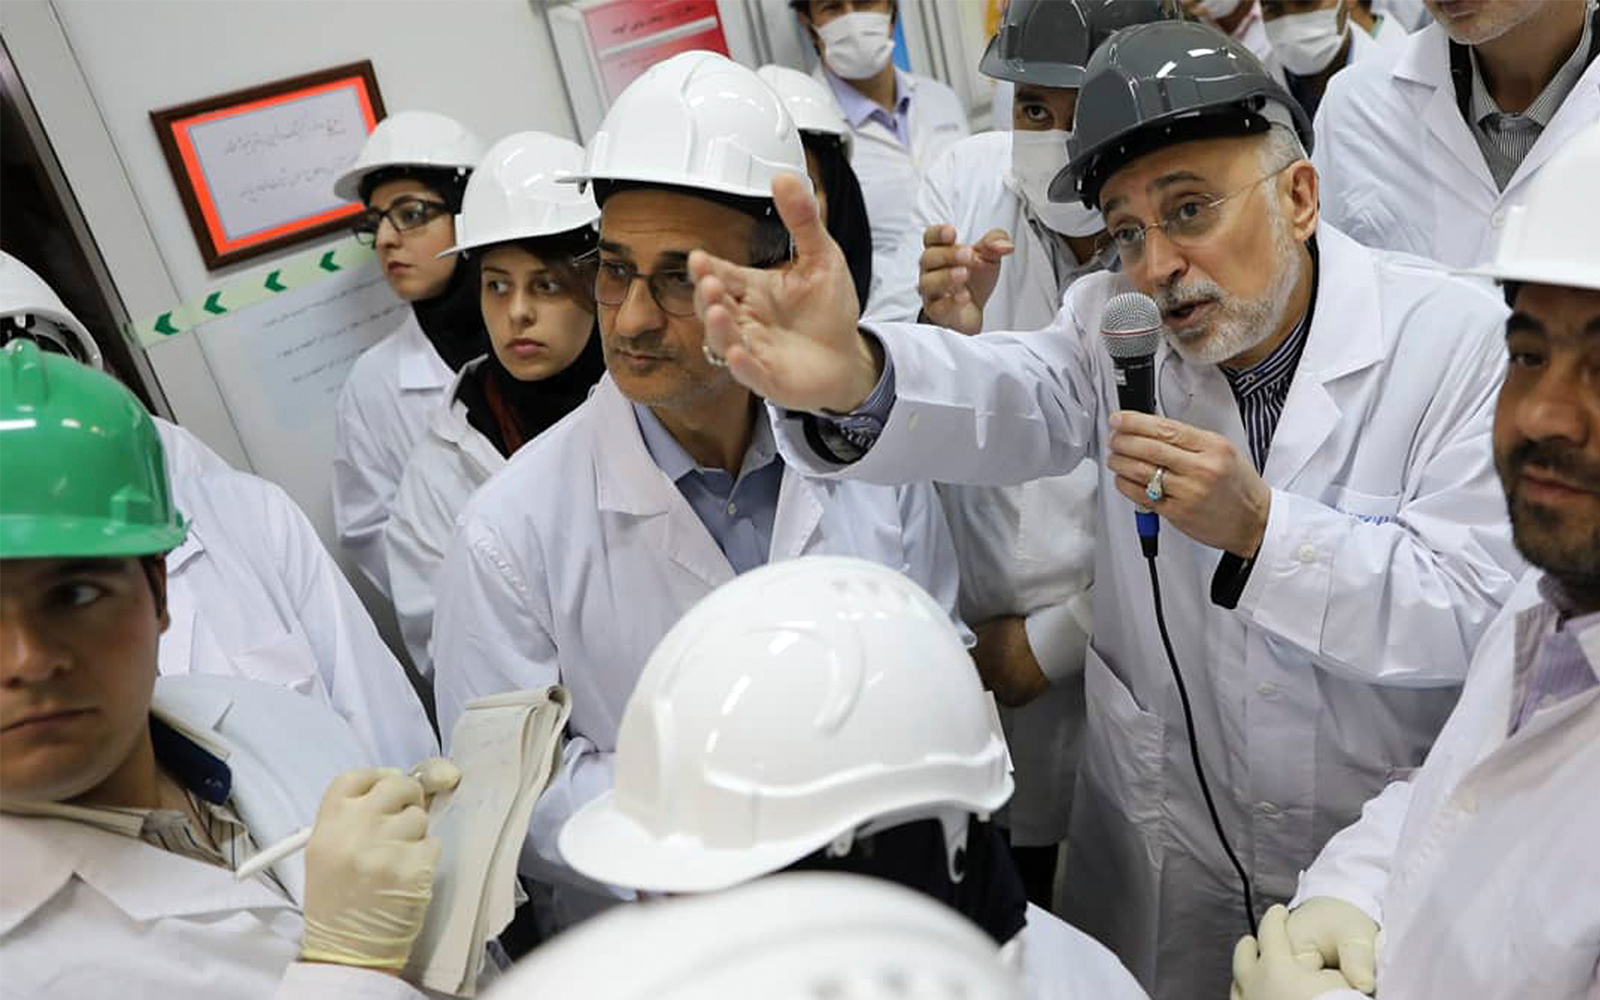 Nov. 4 2019 by the Atomic Energy Organization of Iran Ali Akbar Salehi head of the organization speaks with media while visiting Natanz enrichment facility in central Iran